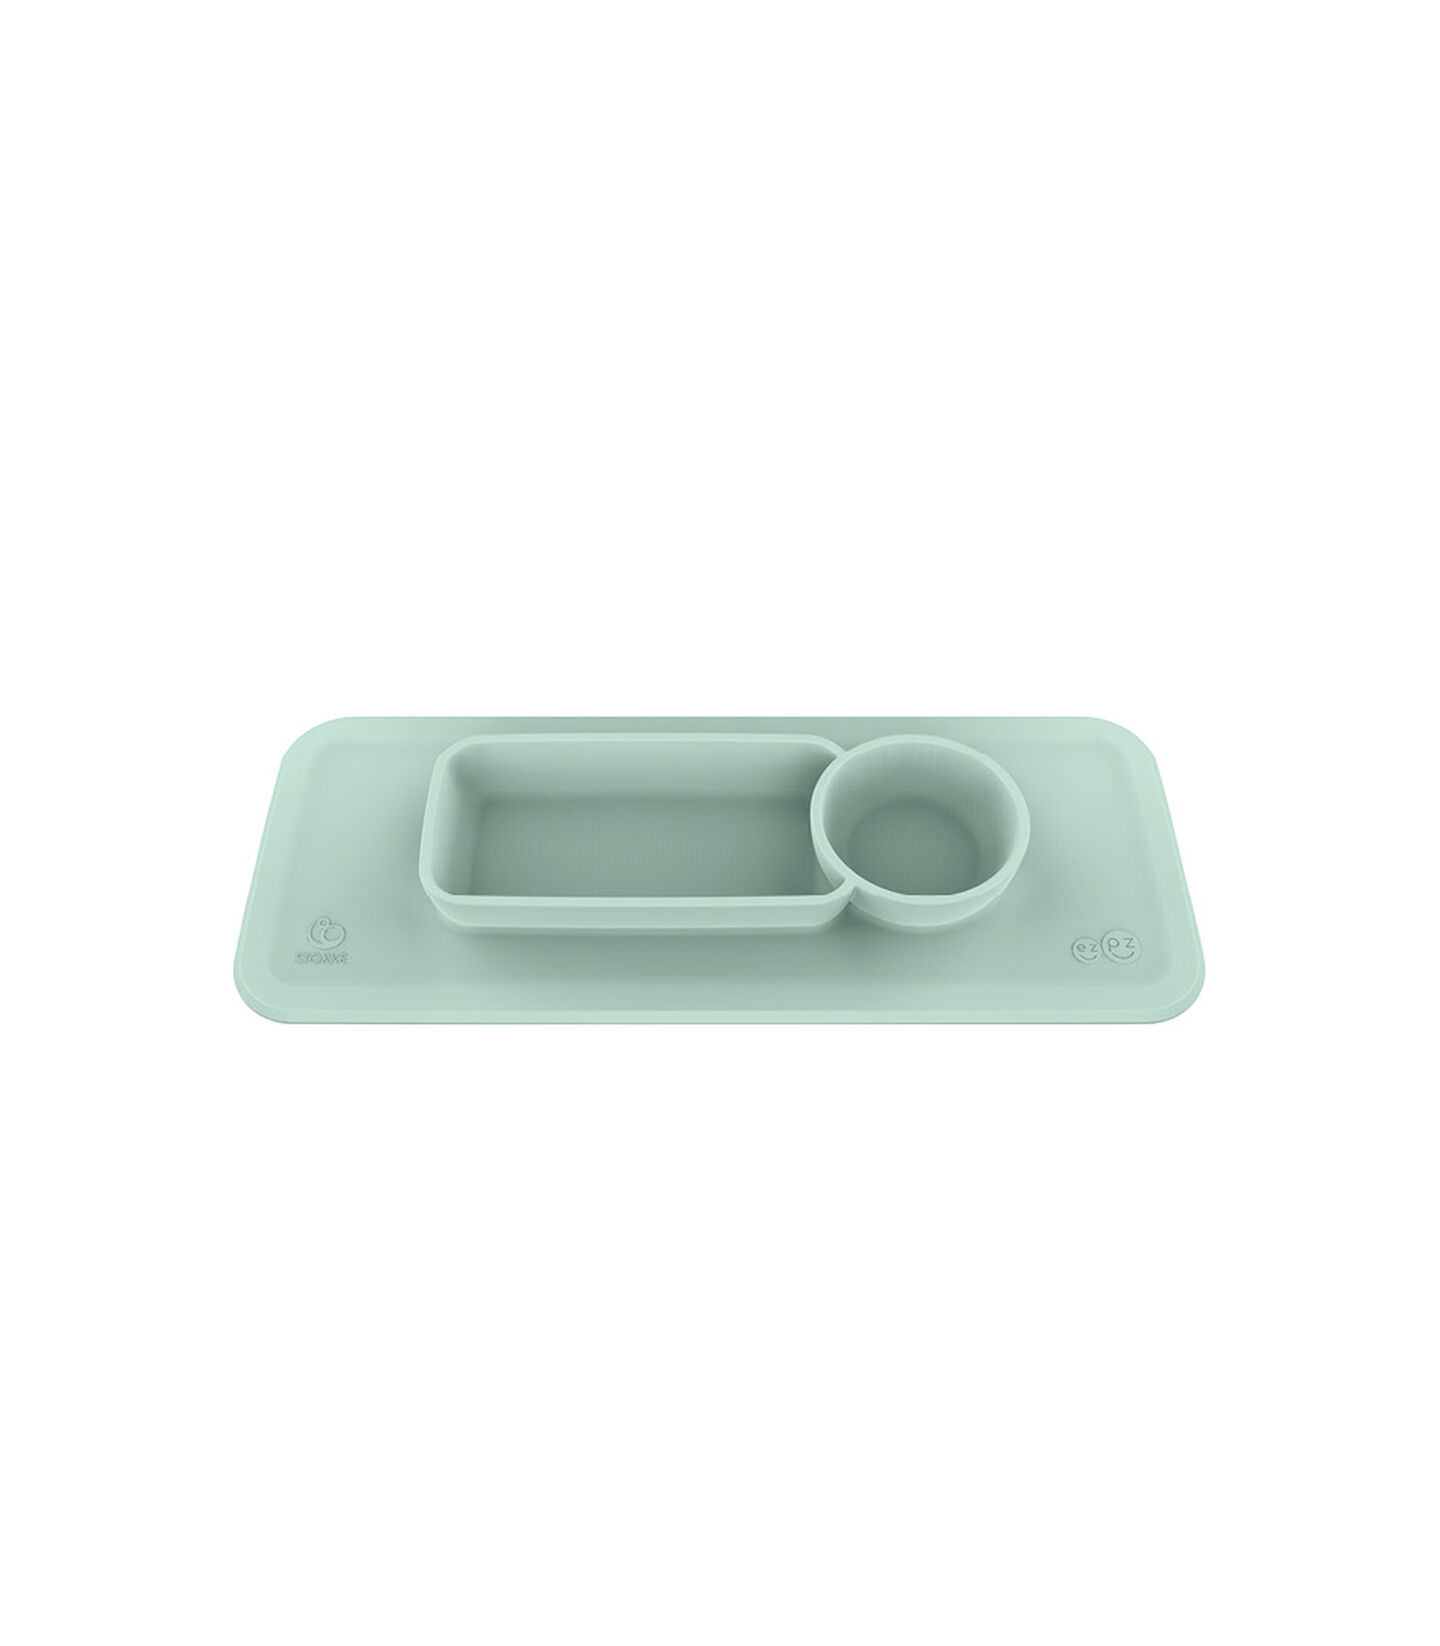 ezpz™ by Stokke™ placemat for Clikk™ Tray Soft Mint, Soft Mint, mainview view 2